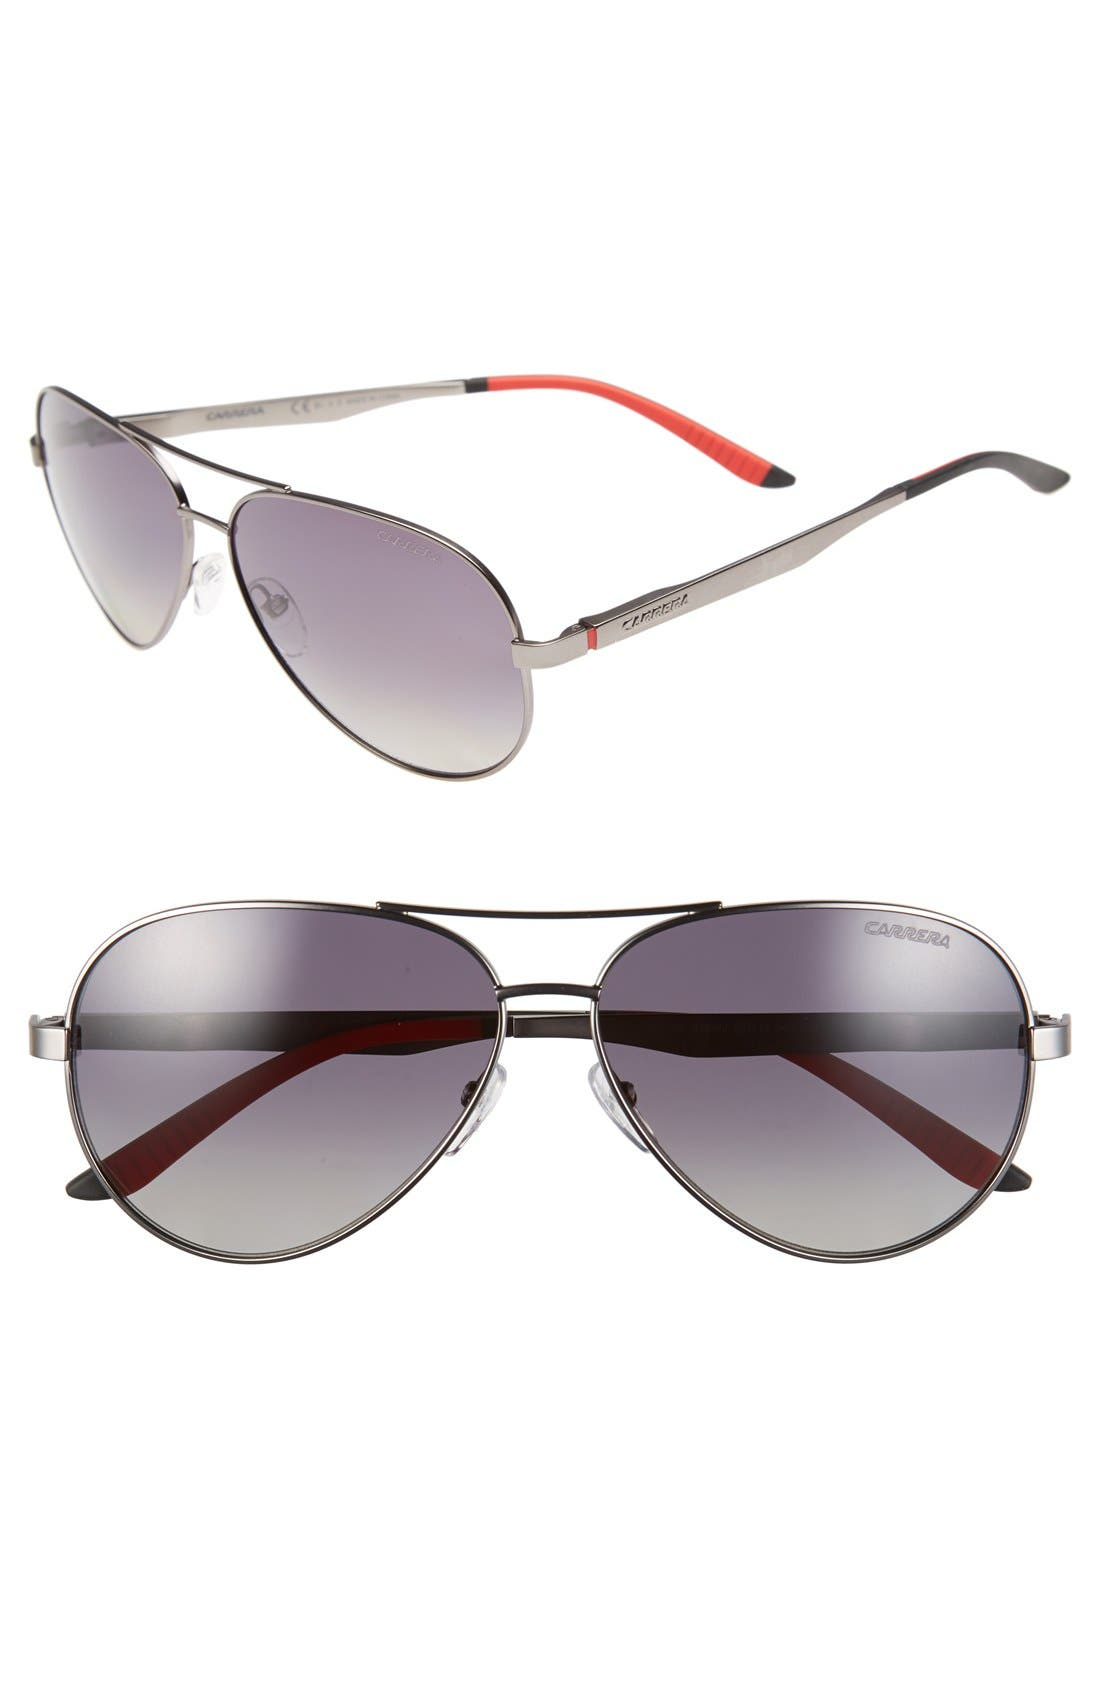 Carrera Eyewear 5m Metal Aviator Sunglasses - Ruthenium/ Grey Gradient